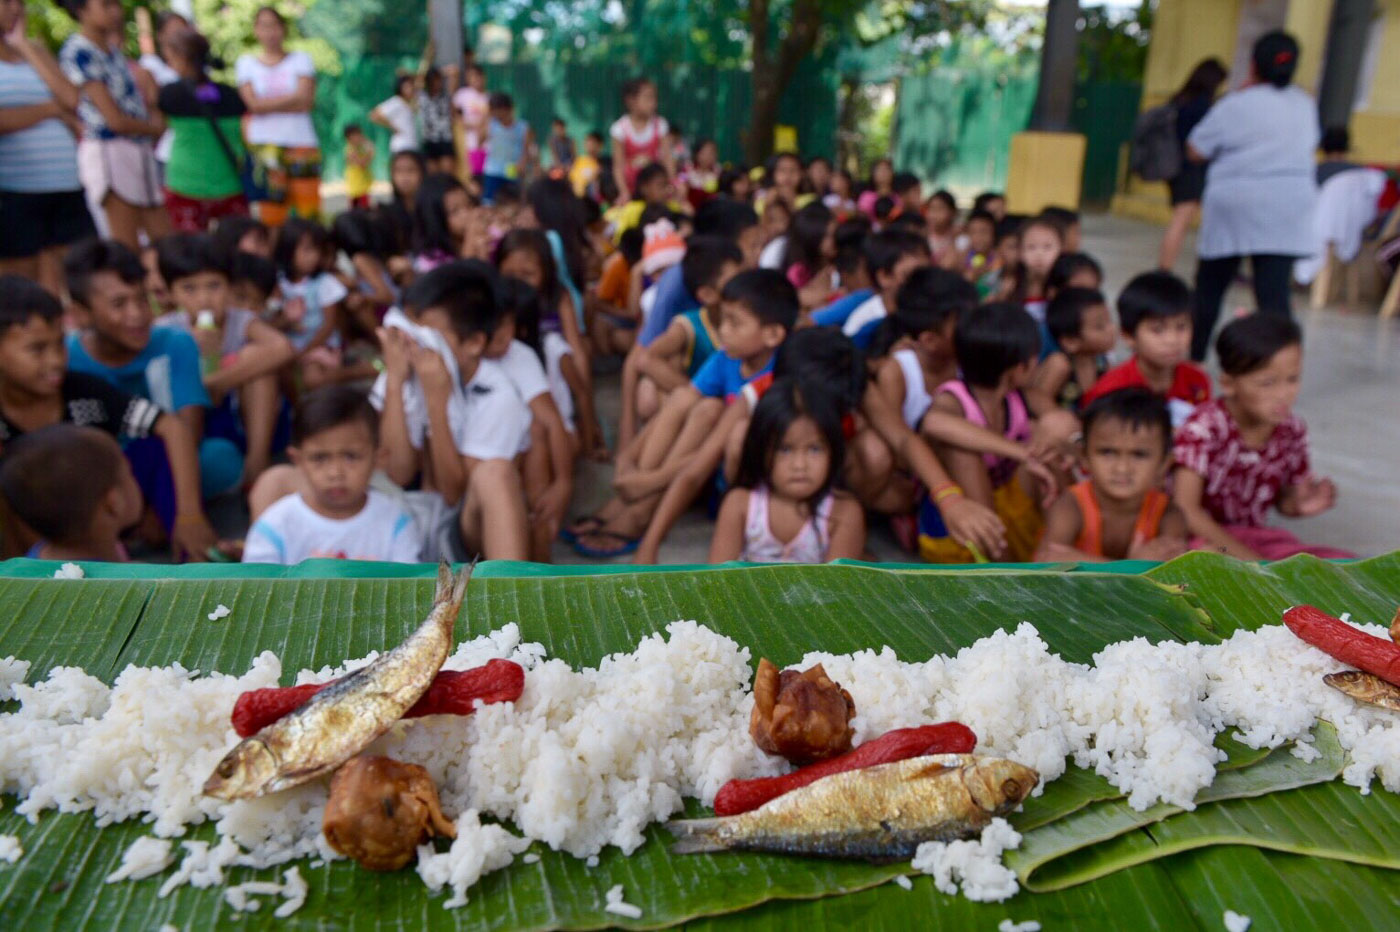 URGENT. FIAN-Philippines and the National Food Coalition remind the public that hunger is still a reality that needs to be addressed urgently. Photo by LeAnne Jazul/Rappler